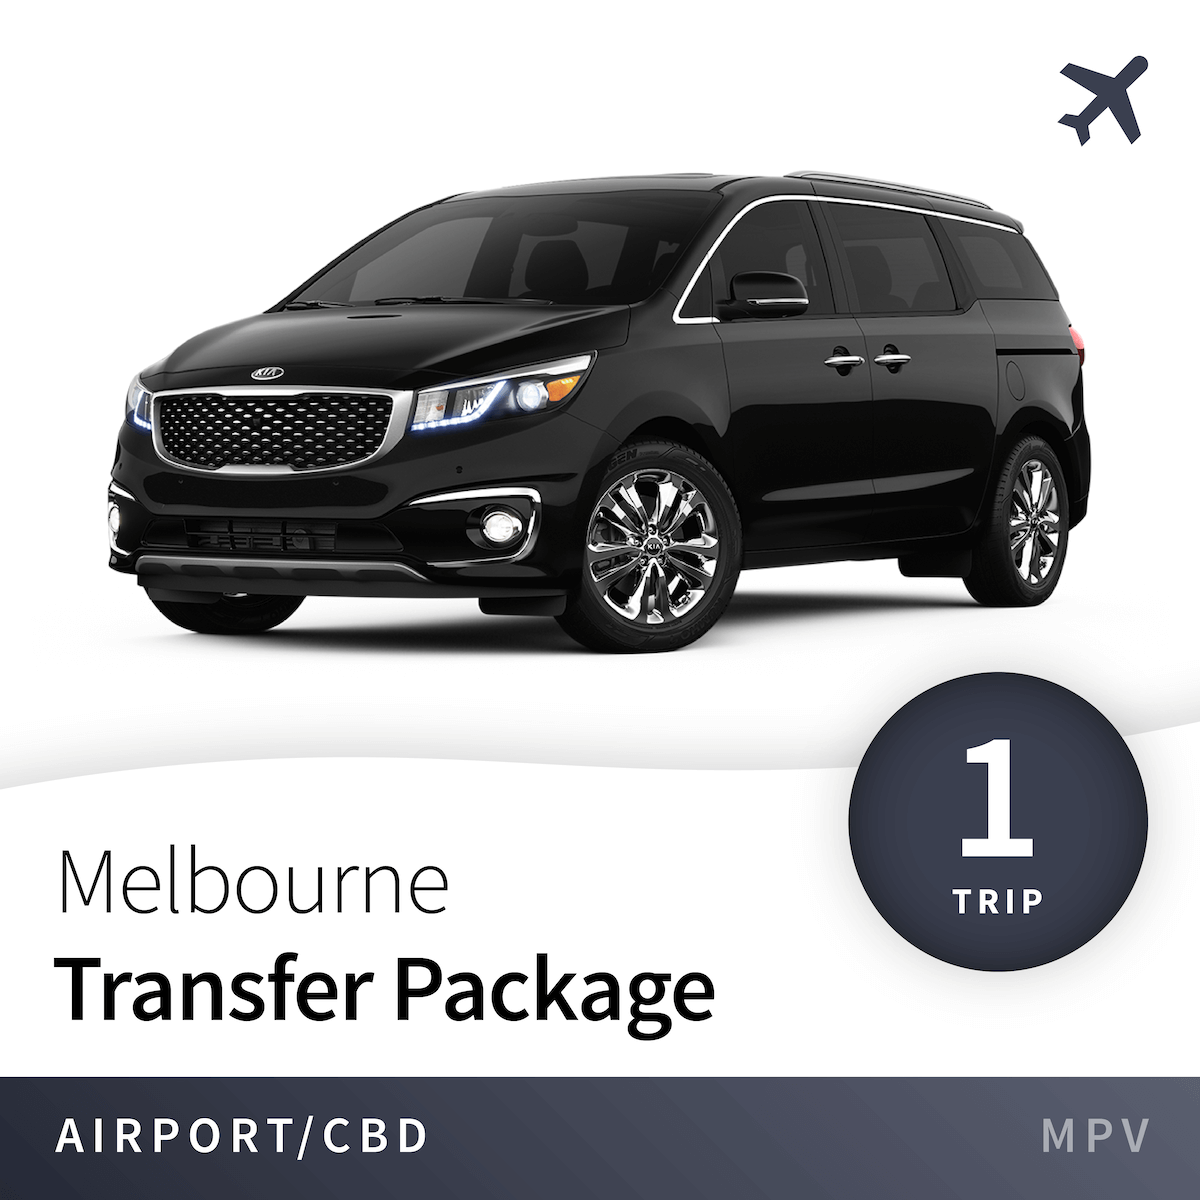 Melbourne Airport Transfer Package - MPV (1 Trip) 7